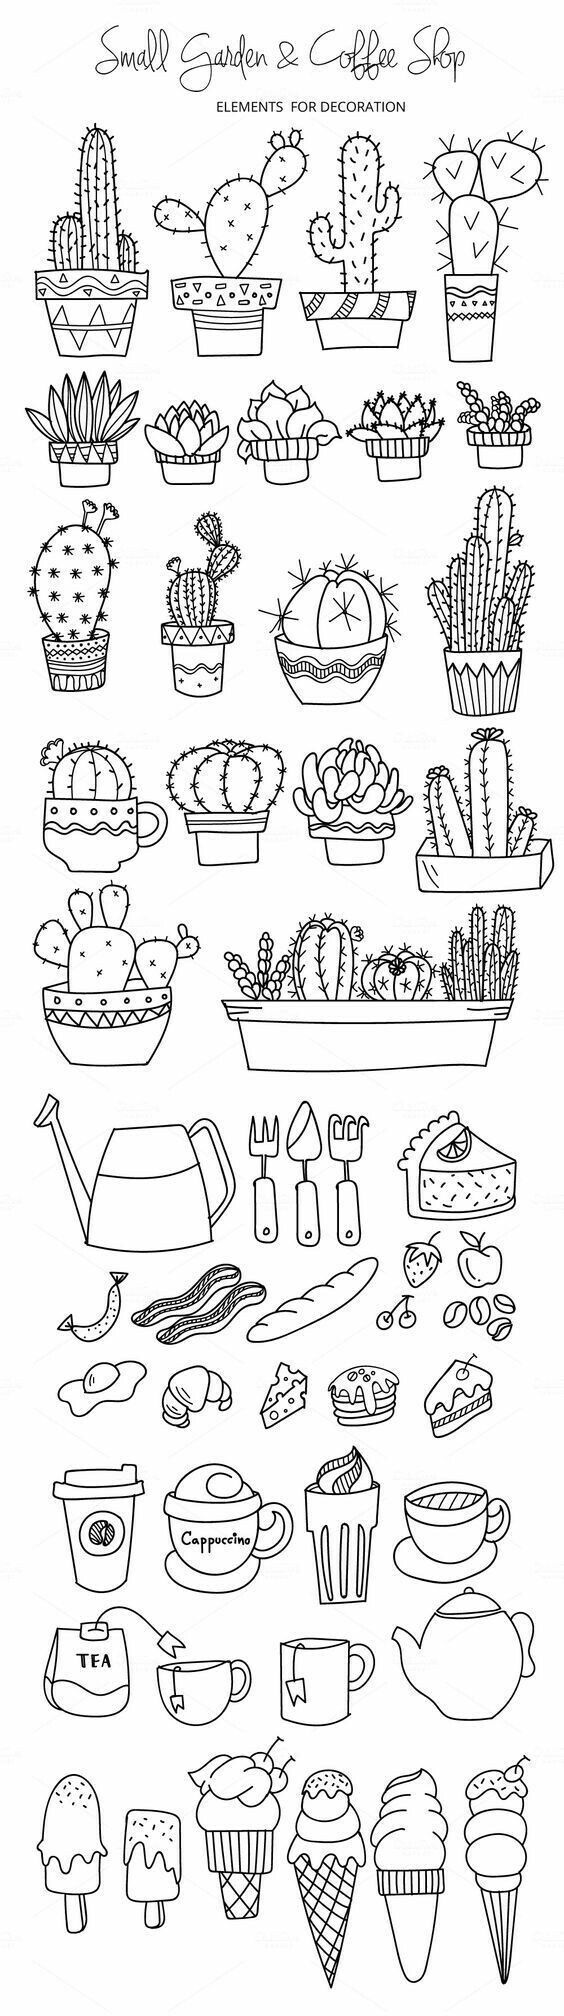 small garden and coffee shop line drawings